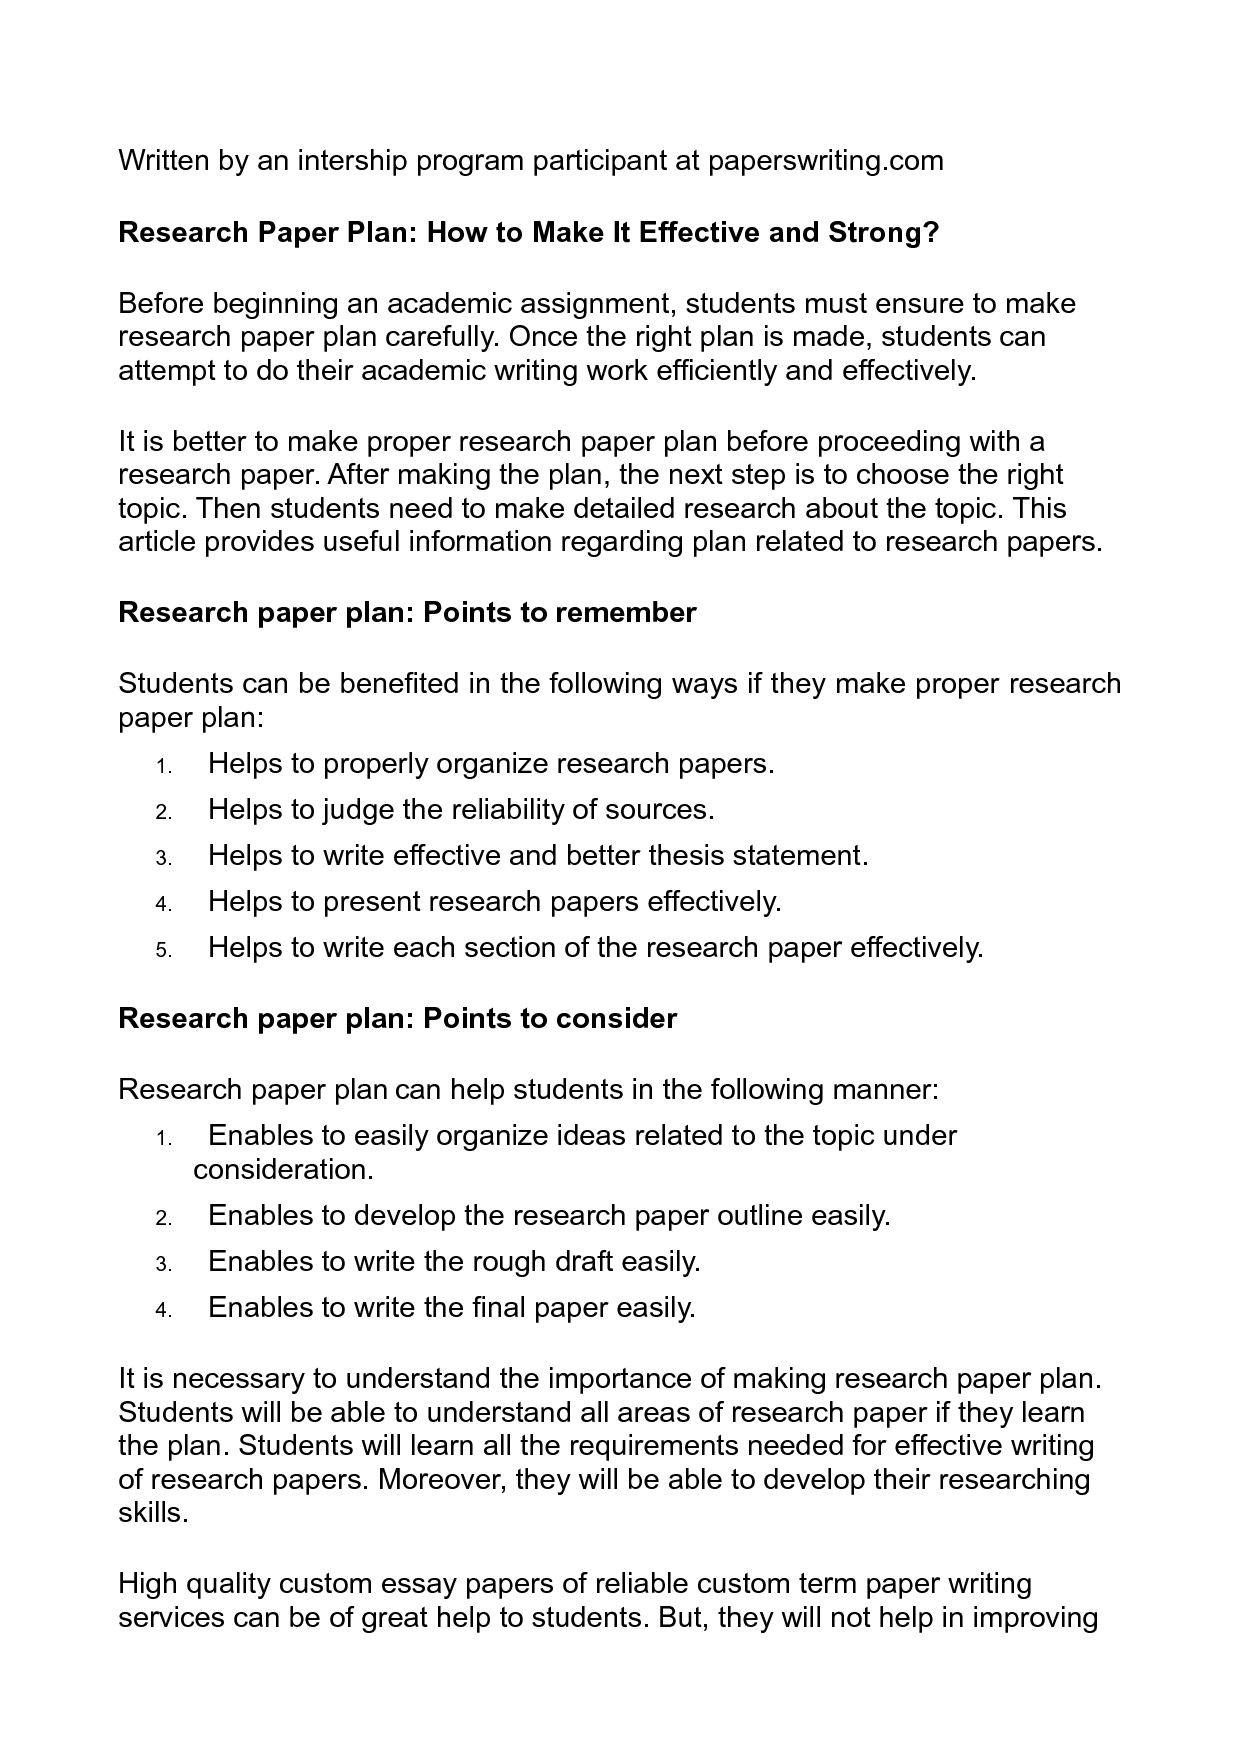 008 Xqj3iznhwu Essay Example How To Write Excellent A Research Proposal Paper In Apa Format Mla Full